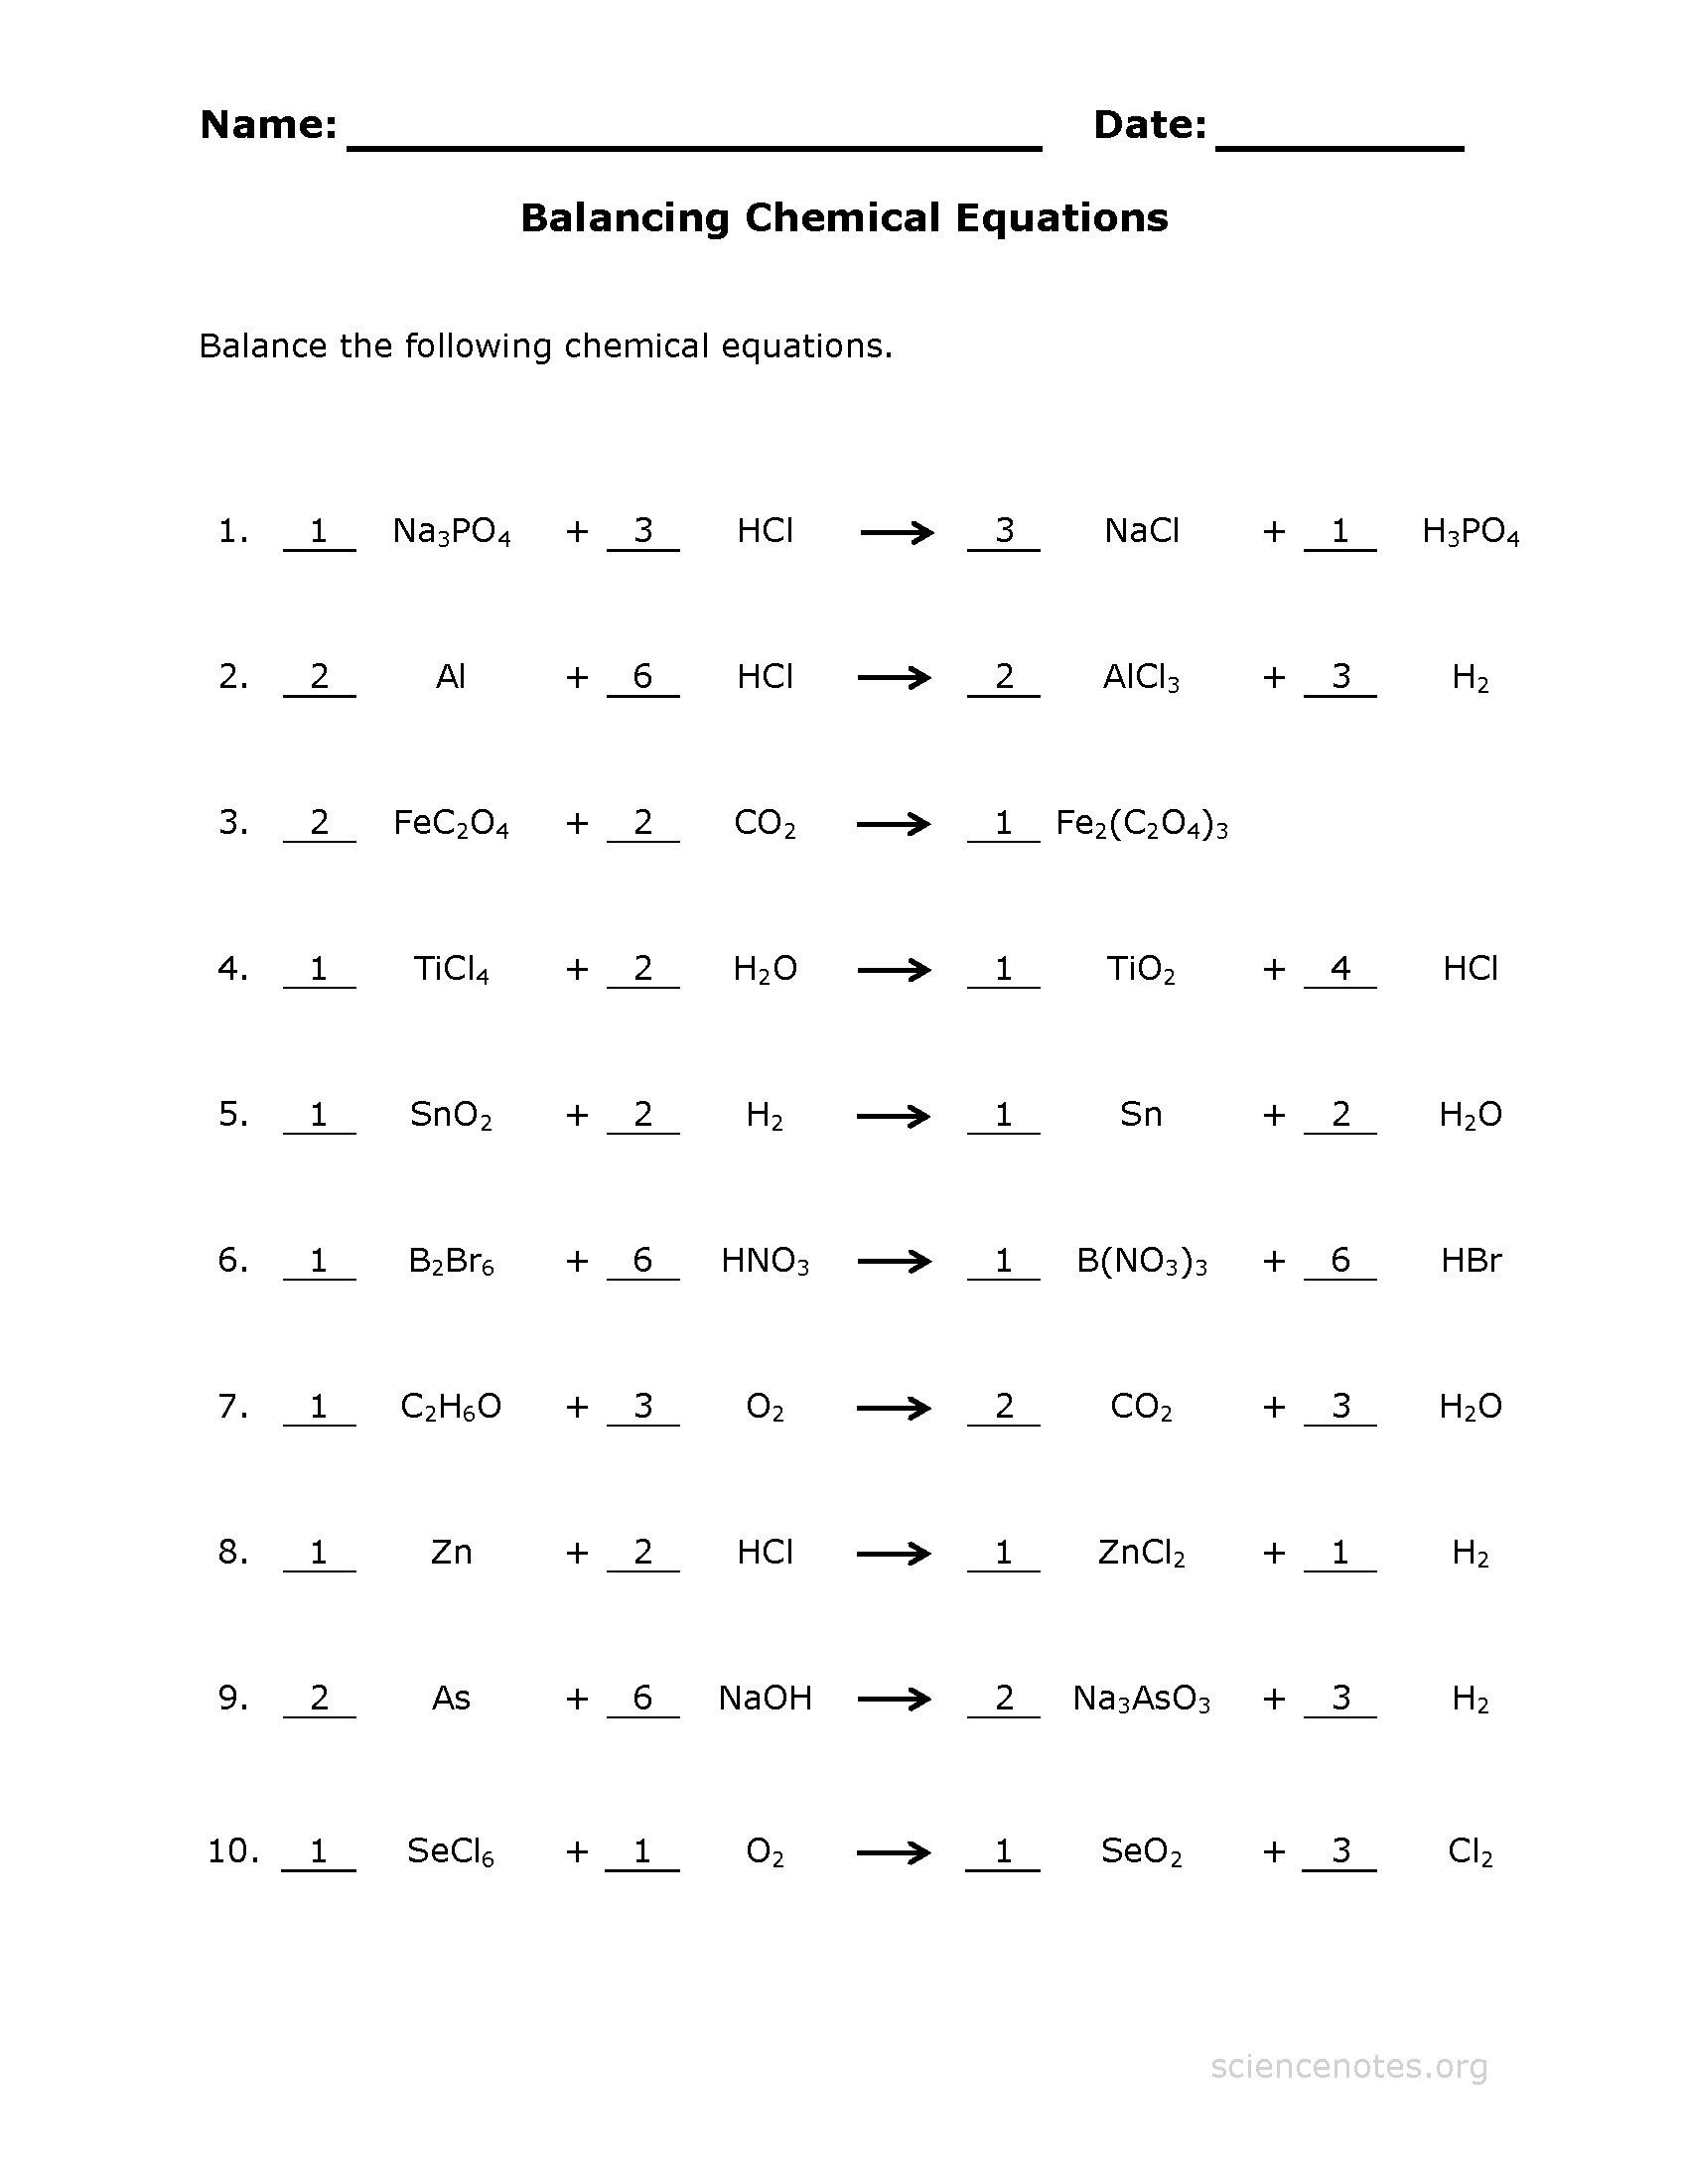 Balance Chemical Equations Worksheet 4 Key - Science Notes ...